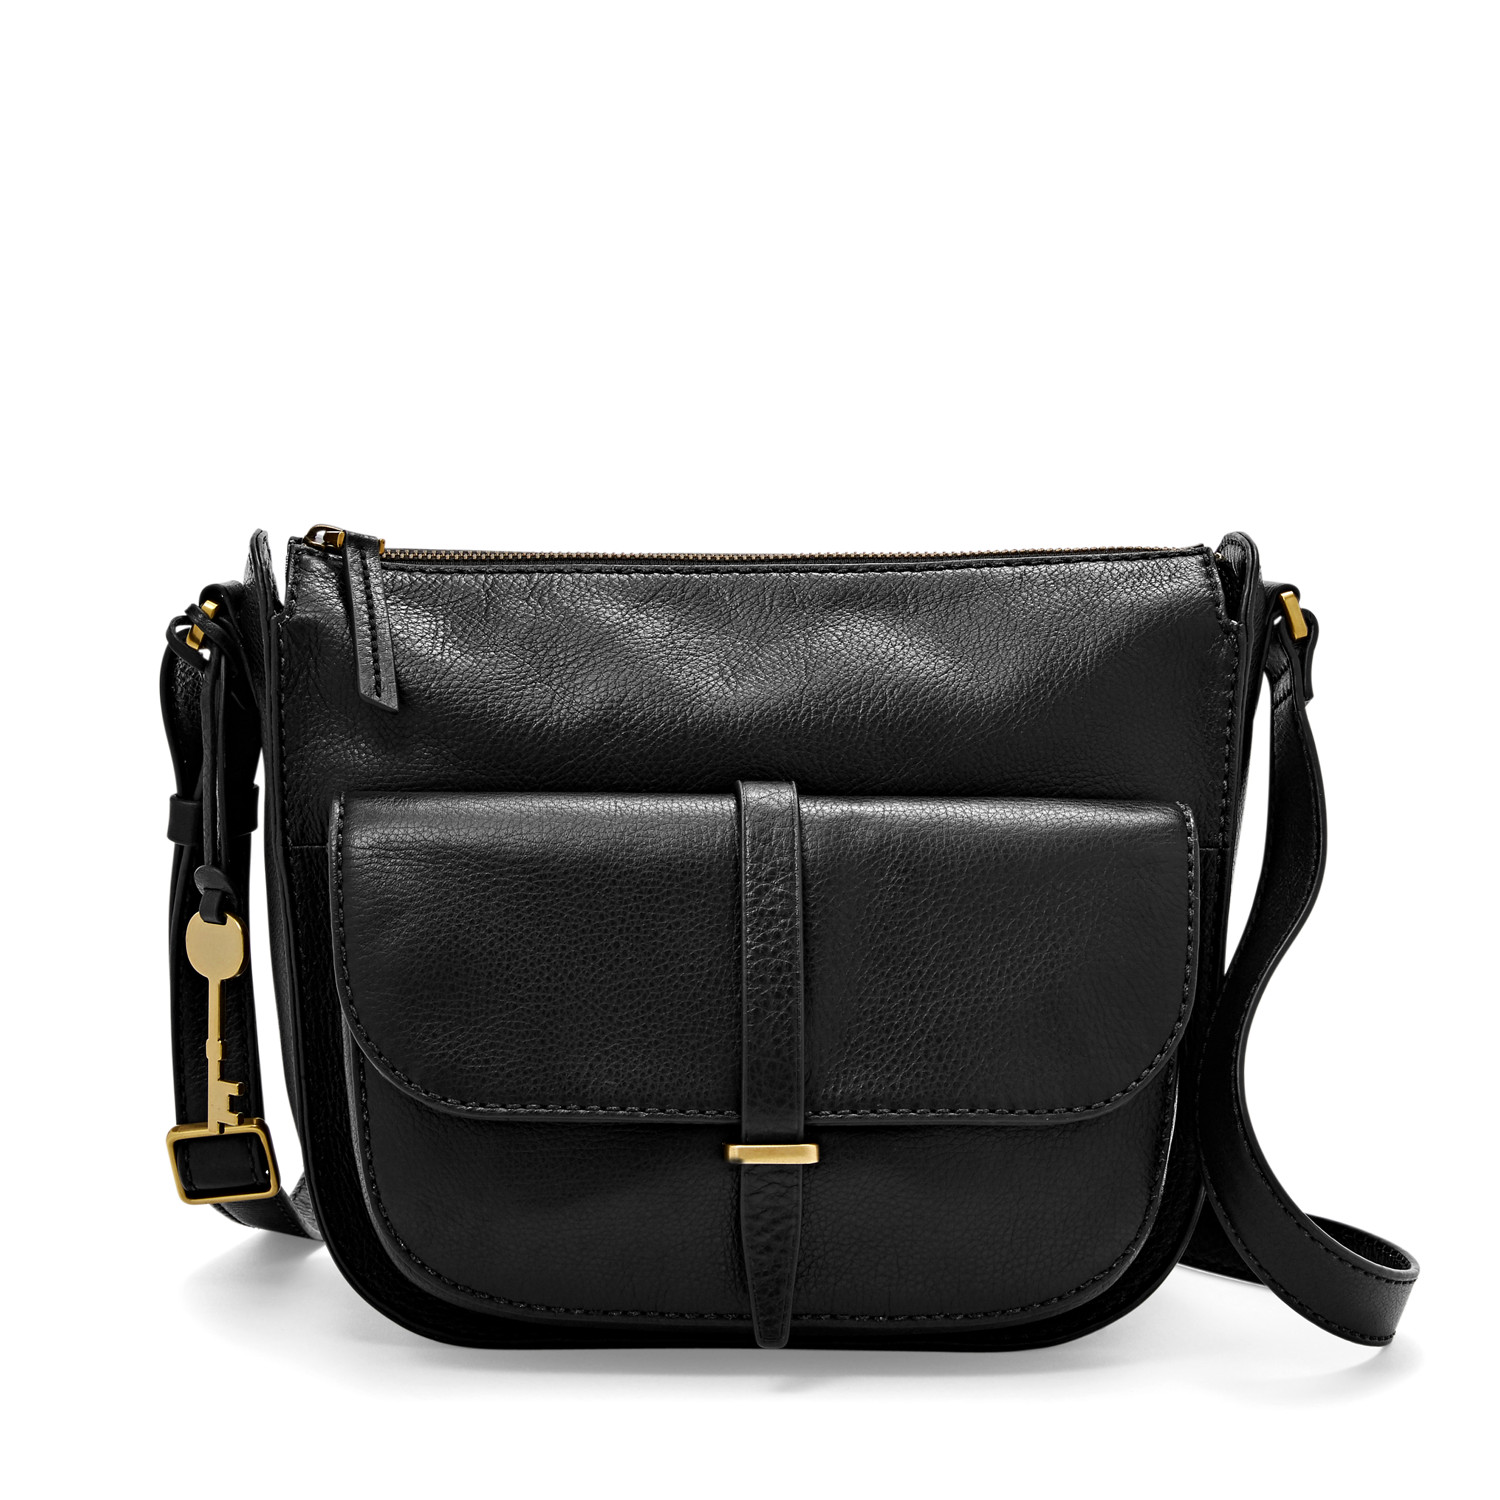 fossil crossbody handbags